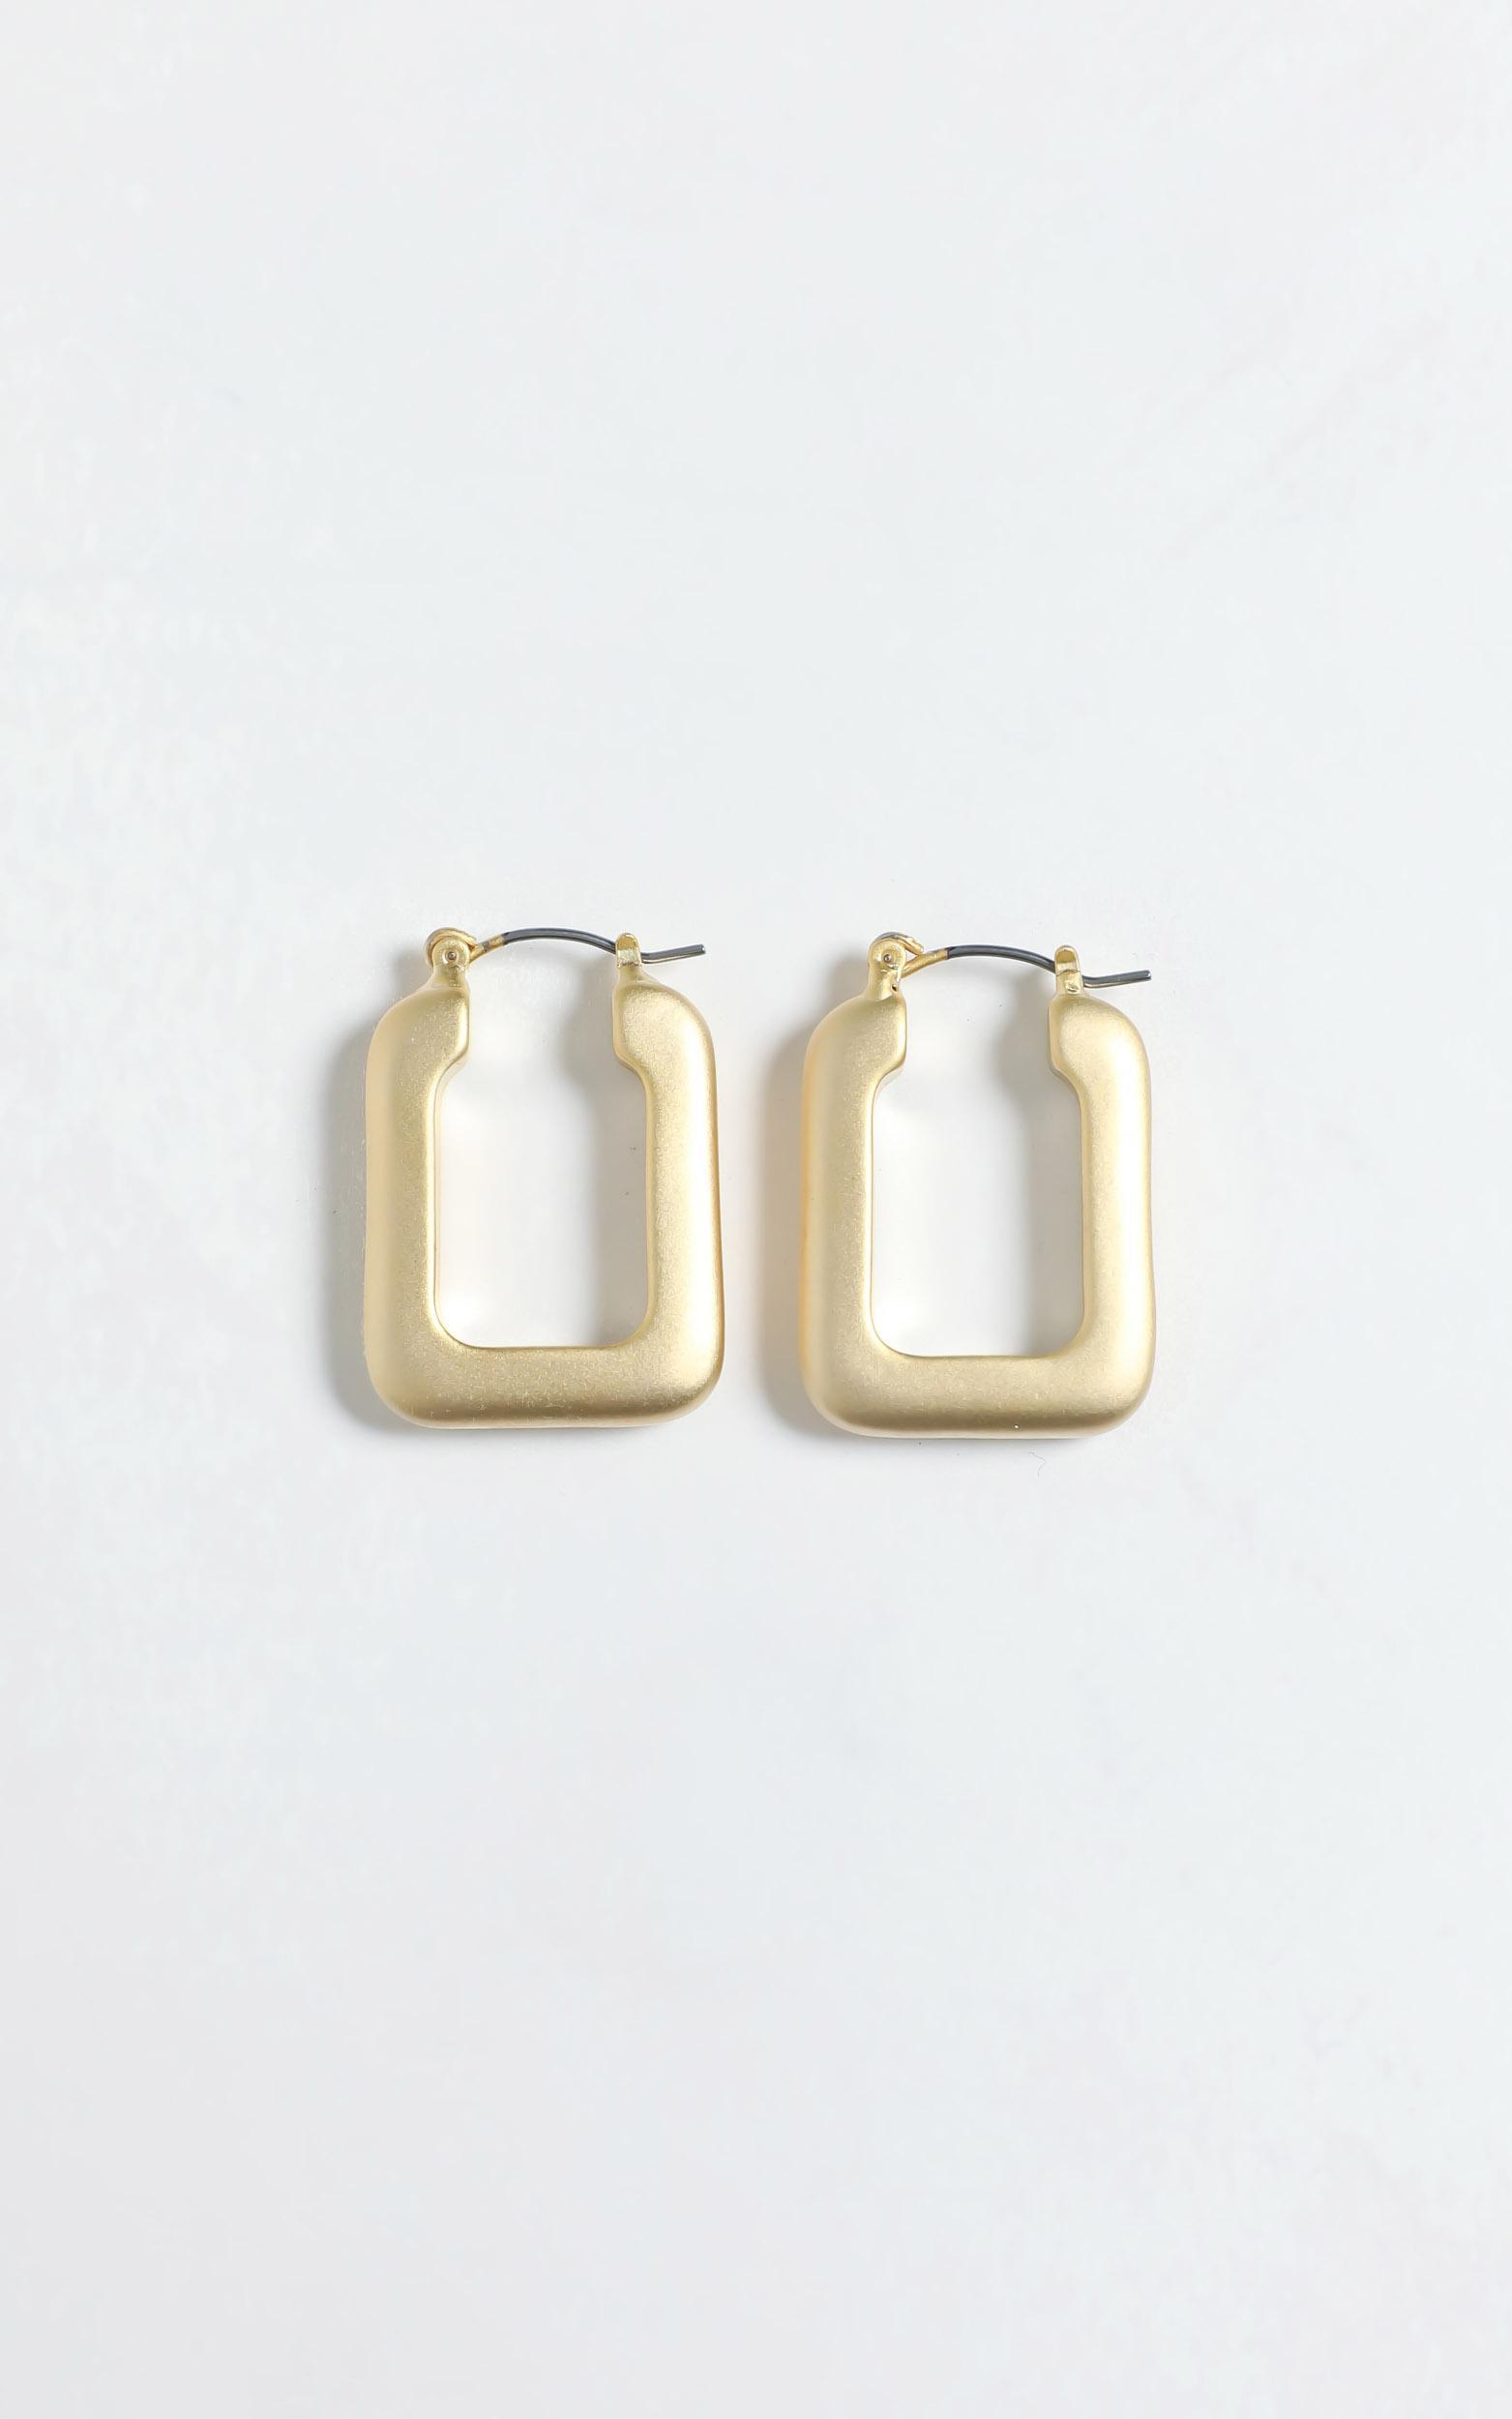 Linnea Earrings in Gold, , hi-res image number null